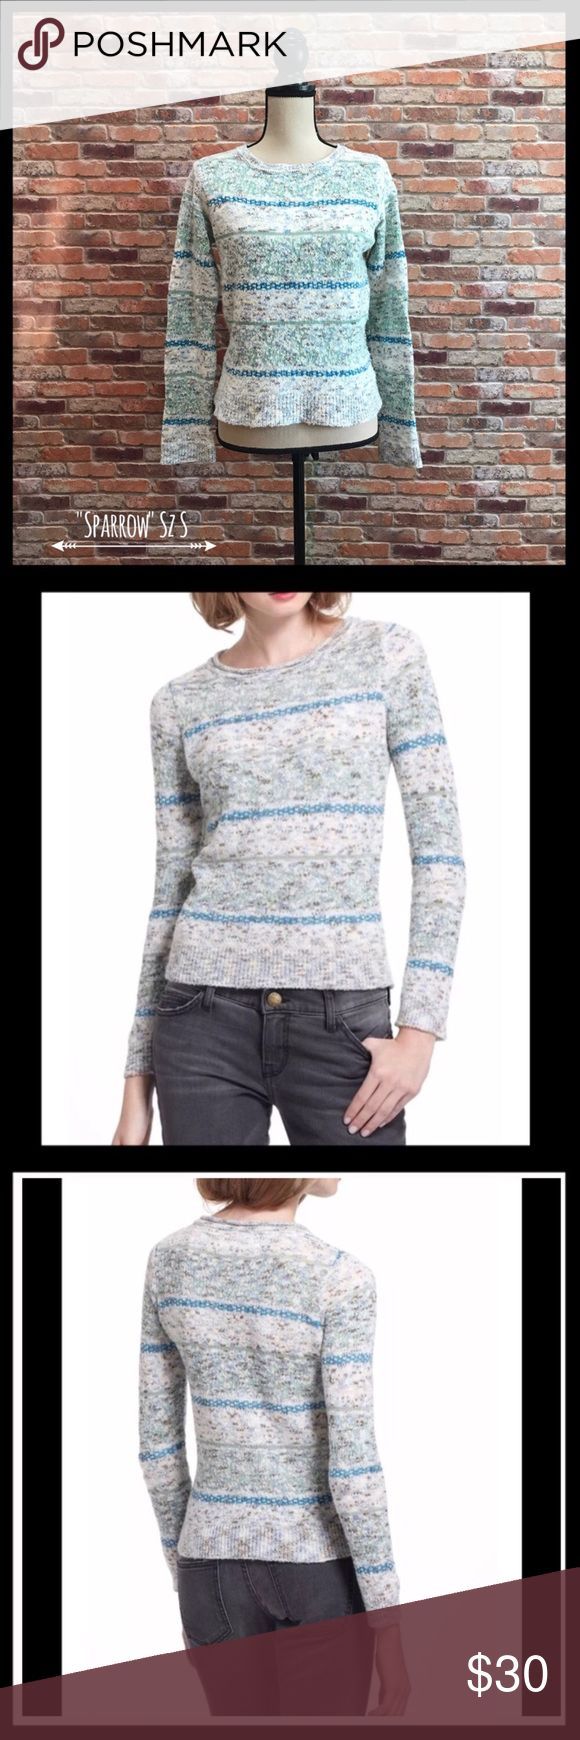 """Anthropologie Sparrow Shimmered Fair Isle Sweater Anthropologie Sparrow Shimmered Fair Isle sweater in a size medium.  Has a crew neck with bands on the cuffs, neckline, and hem.  Has shimmery threads throughout the design of the sweater.  Measures approximately 18"""" armpit to armpit and 20 1/2"""" in length.  35% cotton, 28% merino wool, 17% nylon, 15% acrylic, and 5% other fibers.  In excellent condition. Anthropologie Sweaters Crew & Scoop Necks"""